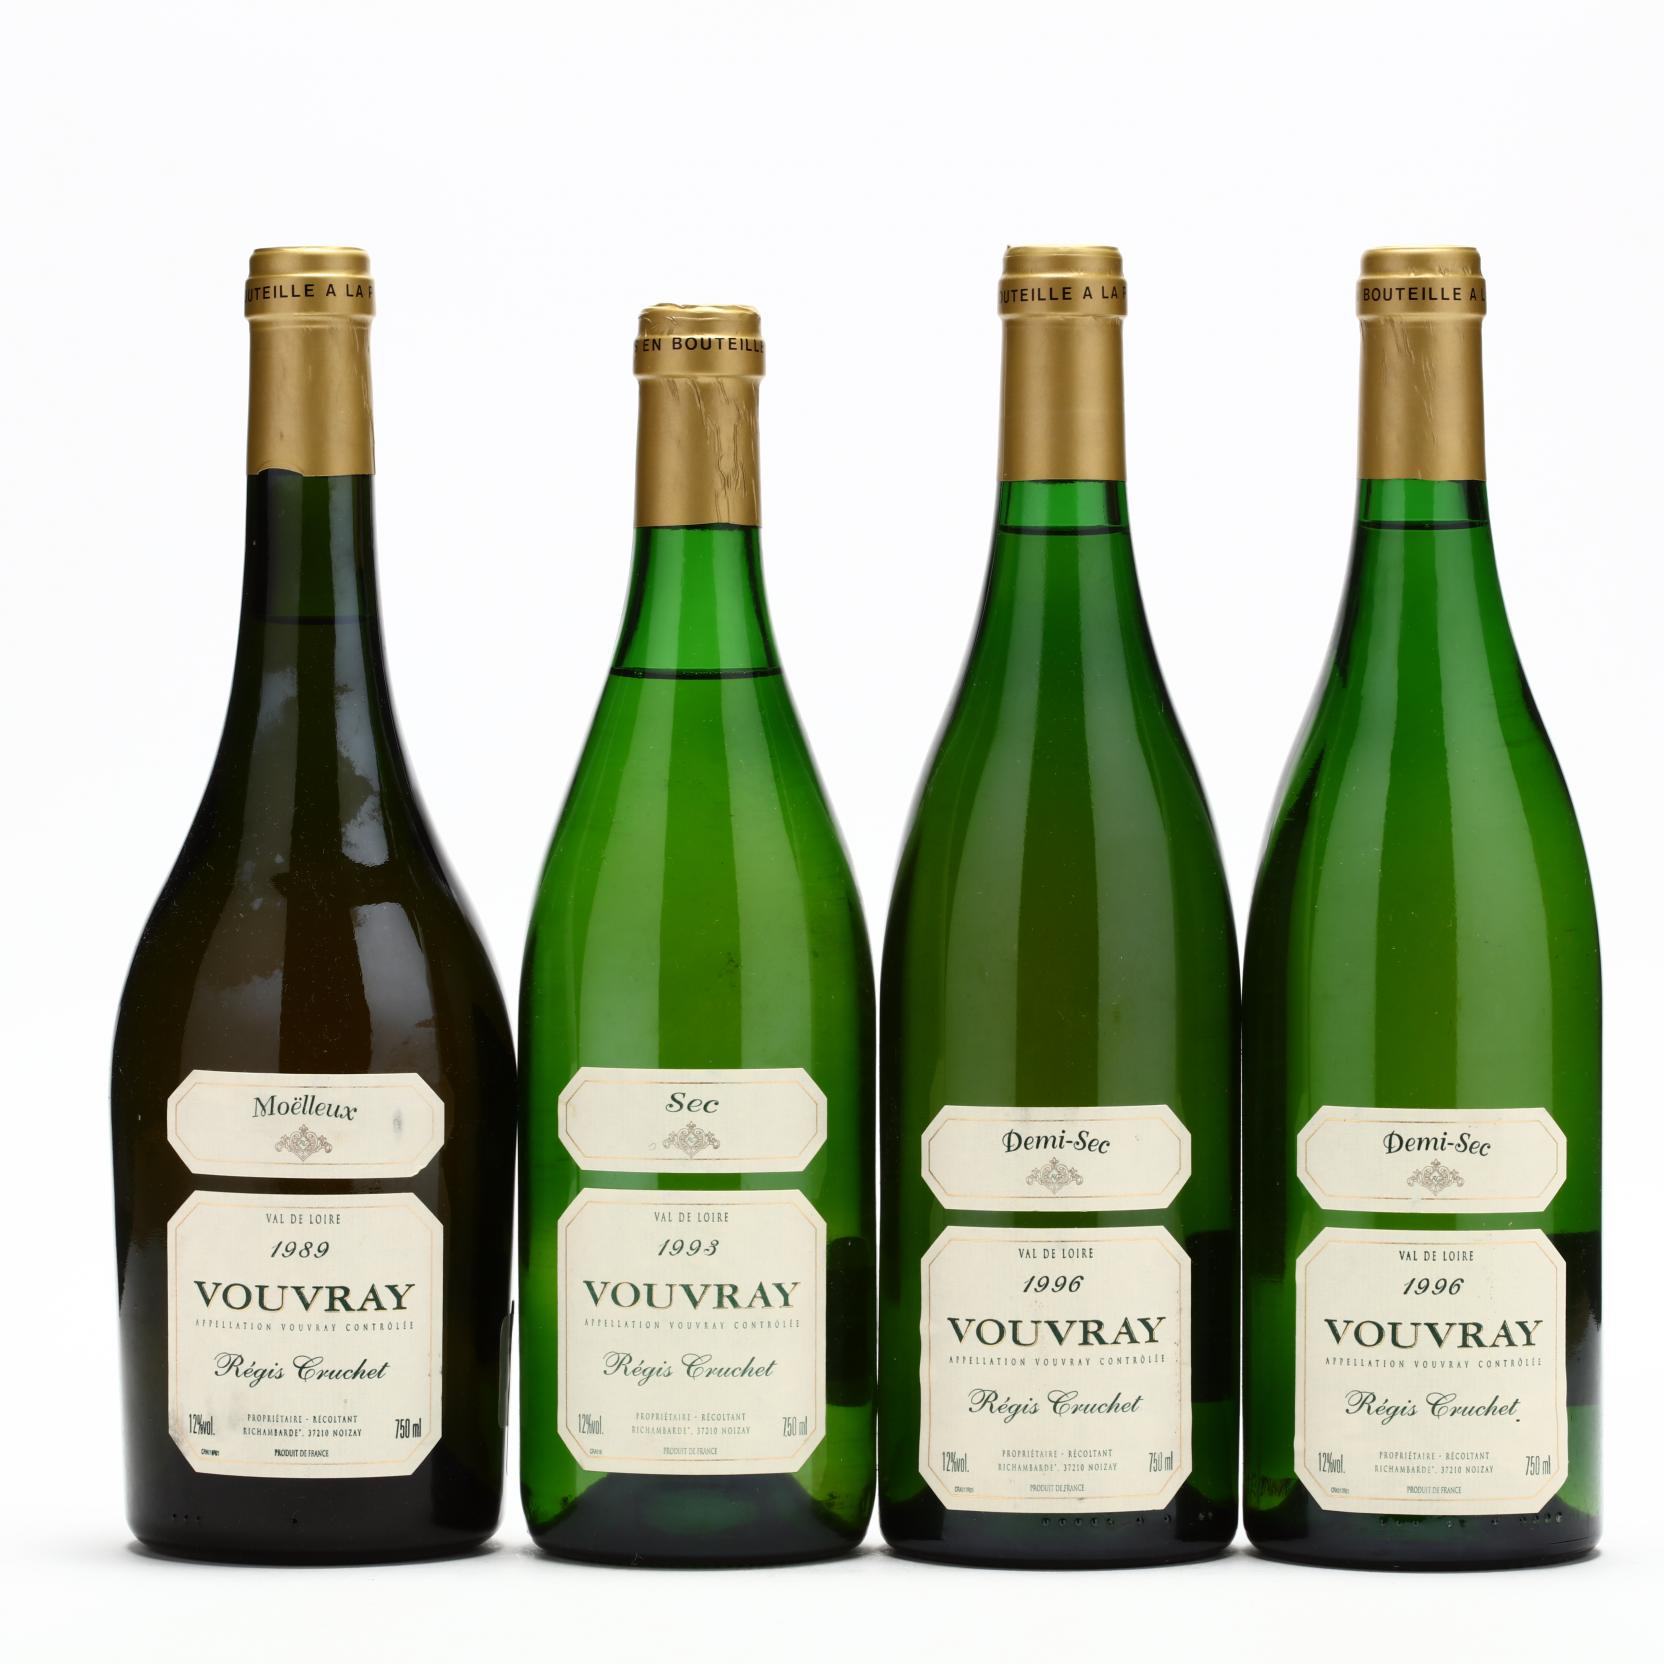 beautiful-vouvray-selection-from-regis-cruchet